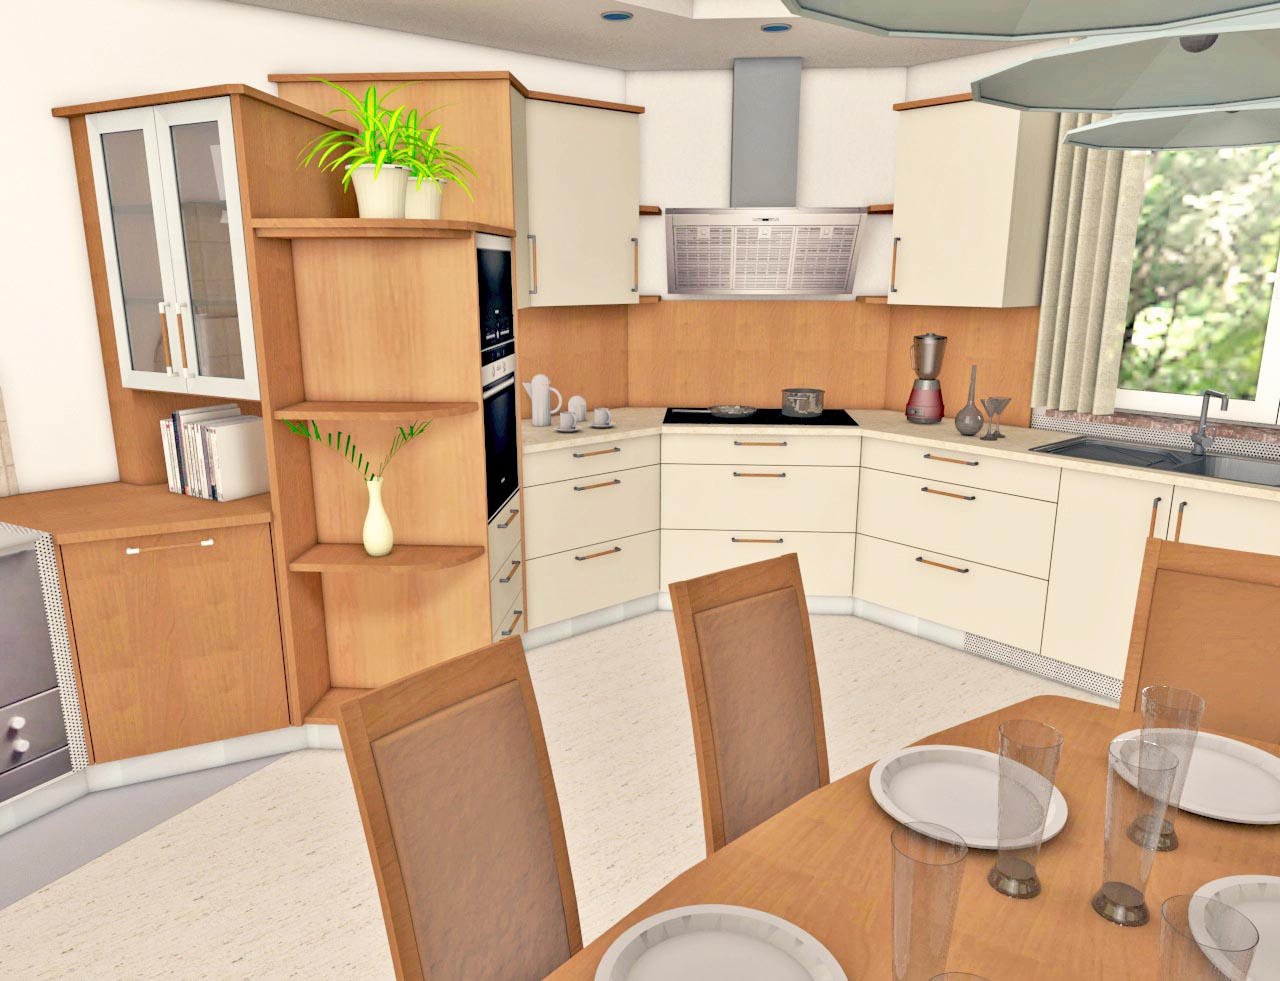 Kitchen construction design and layout -  Kitchen Design Interiorcad For Vectorworks